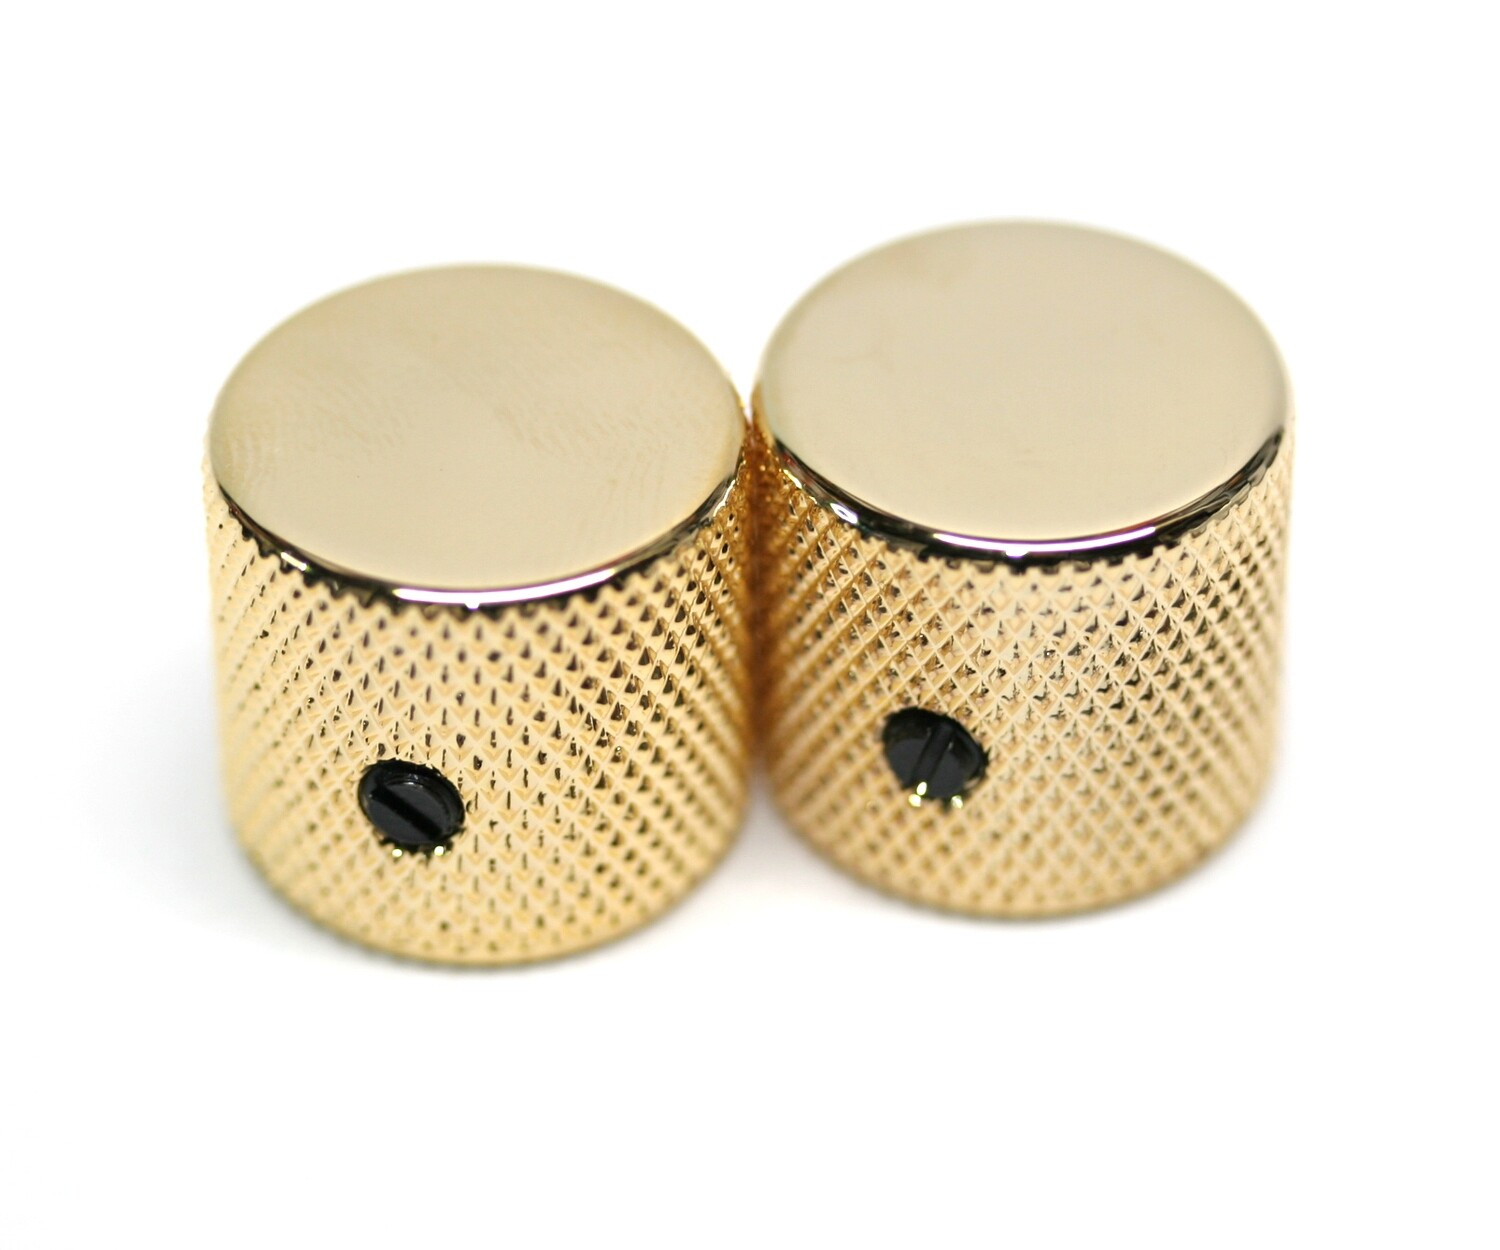 Gotoh Metal Barrel Knobs USA Solid Shaft Gold